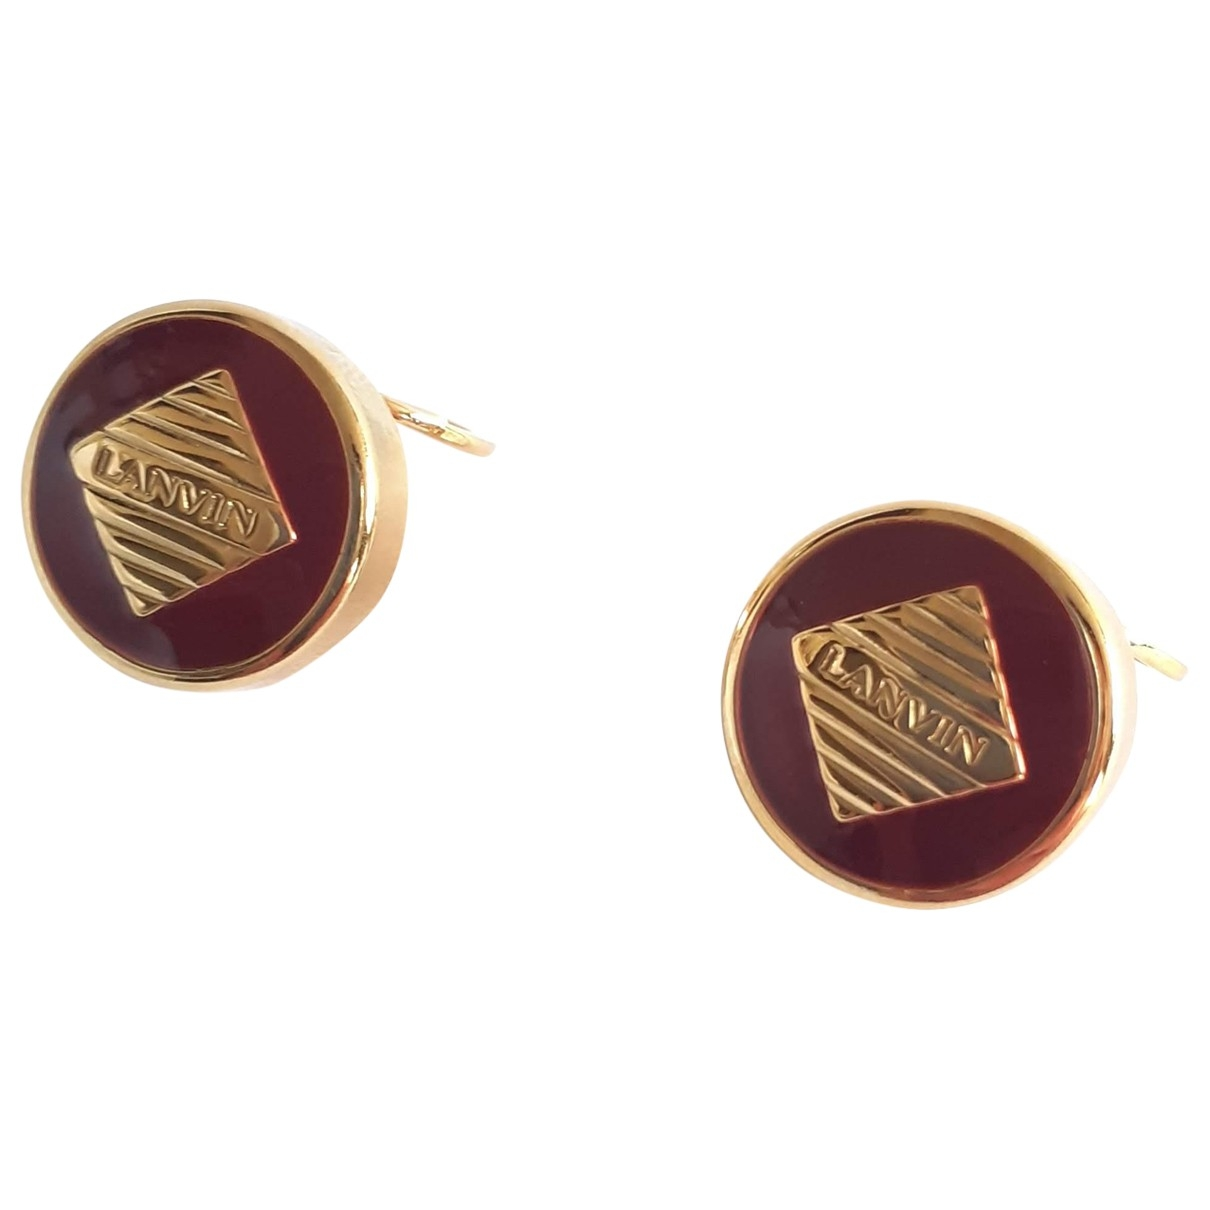 Lanvin \N Burgundy Metal Cufflinks for Men \N